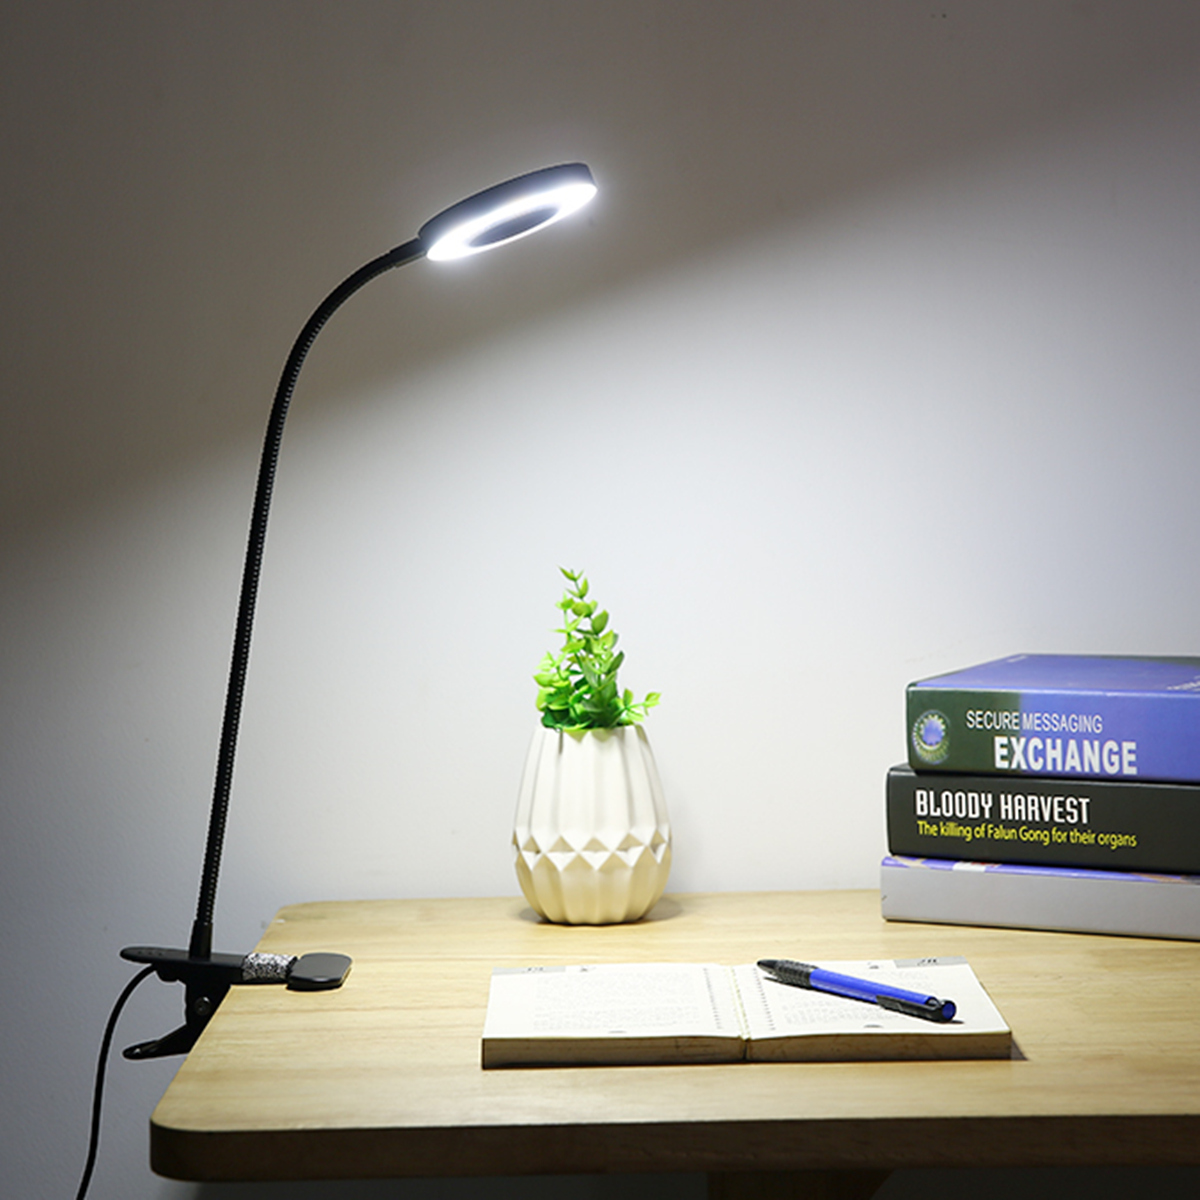 Protect Eye Reading Led Desk Lamp Rotary Lamp Holder Tricolor Lamp Lights & Lighting Led Night Lights